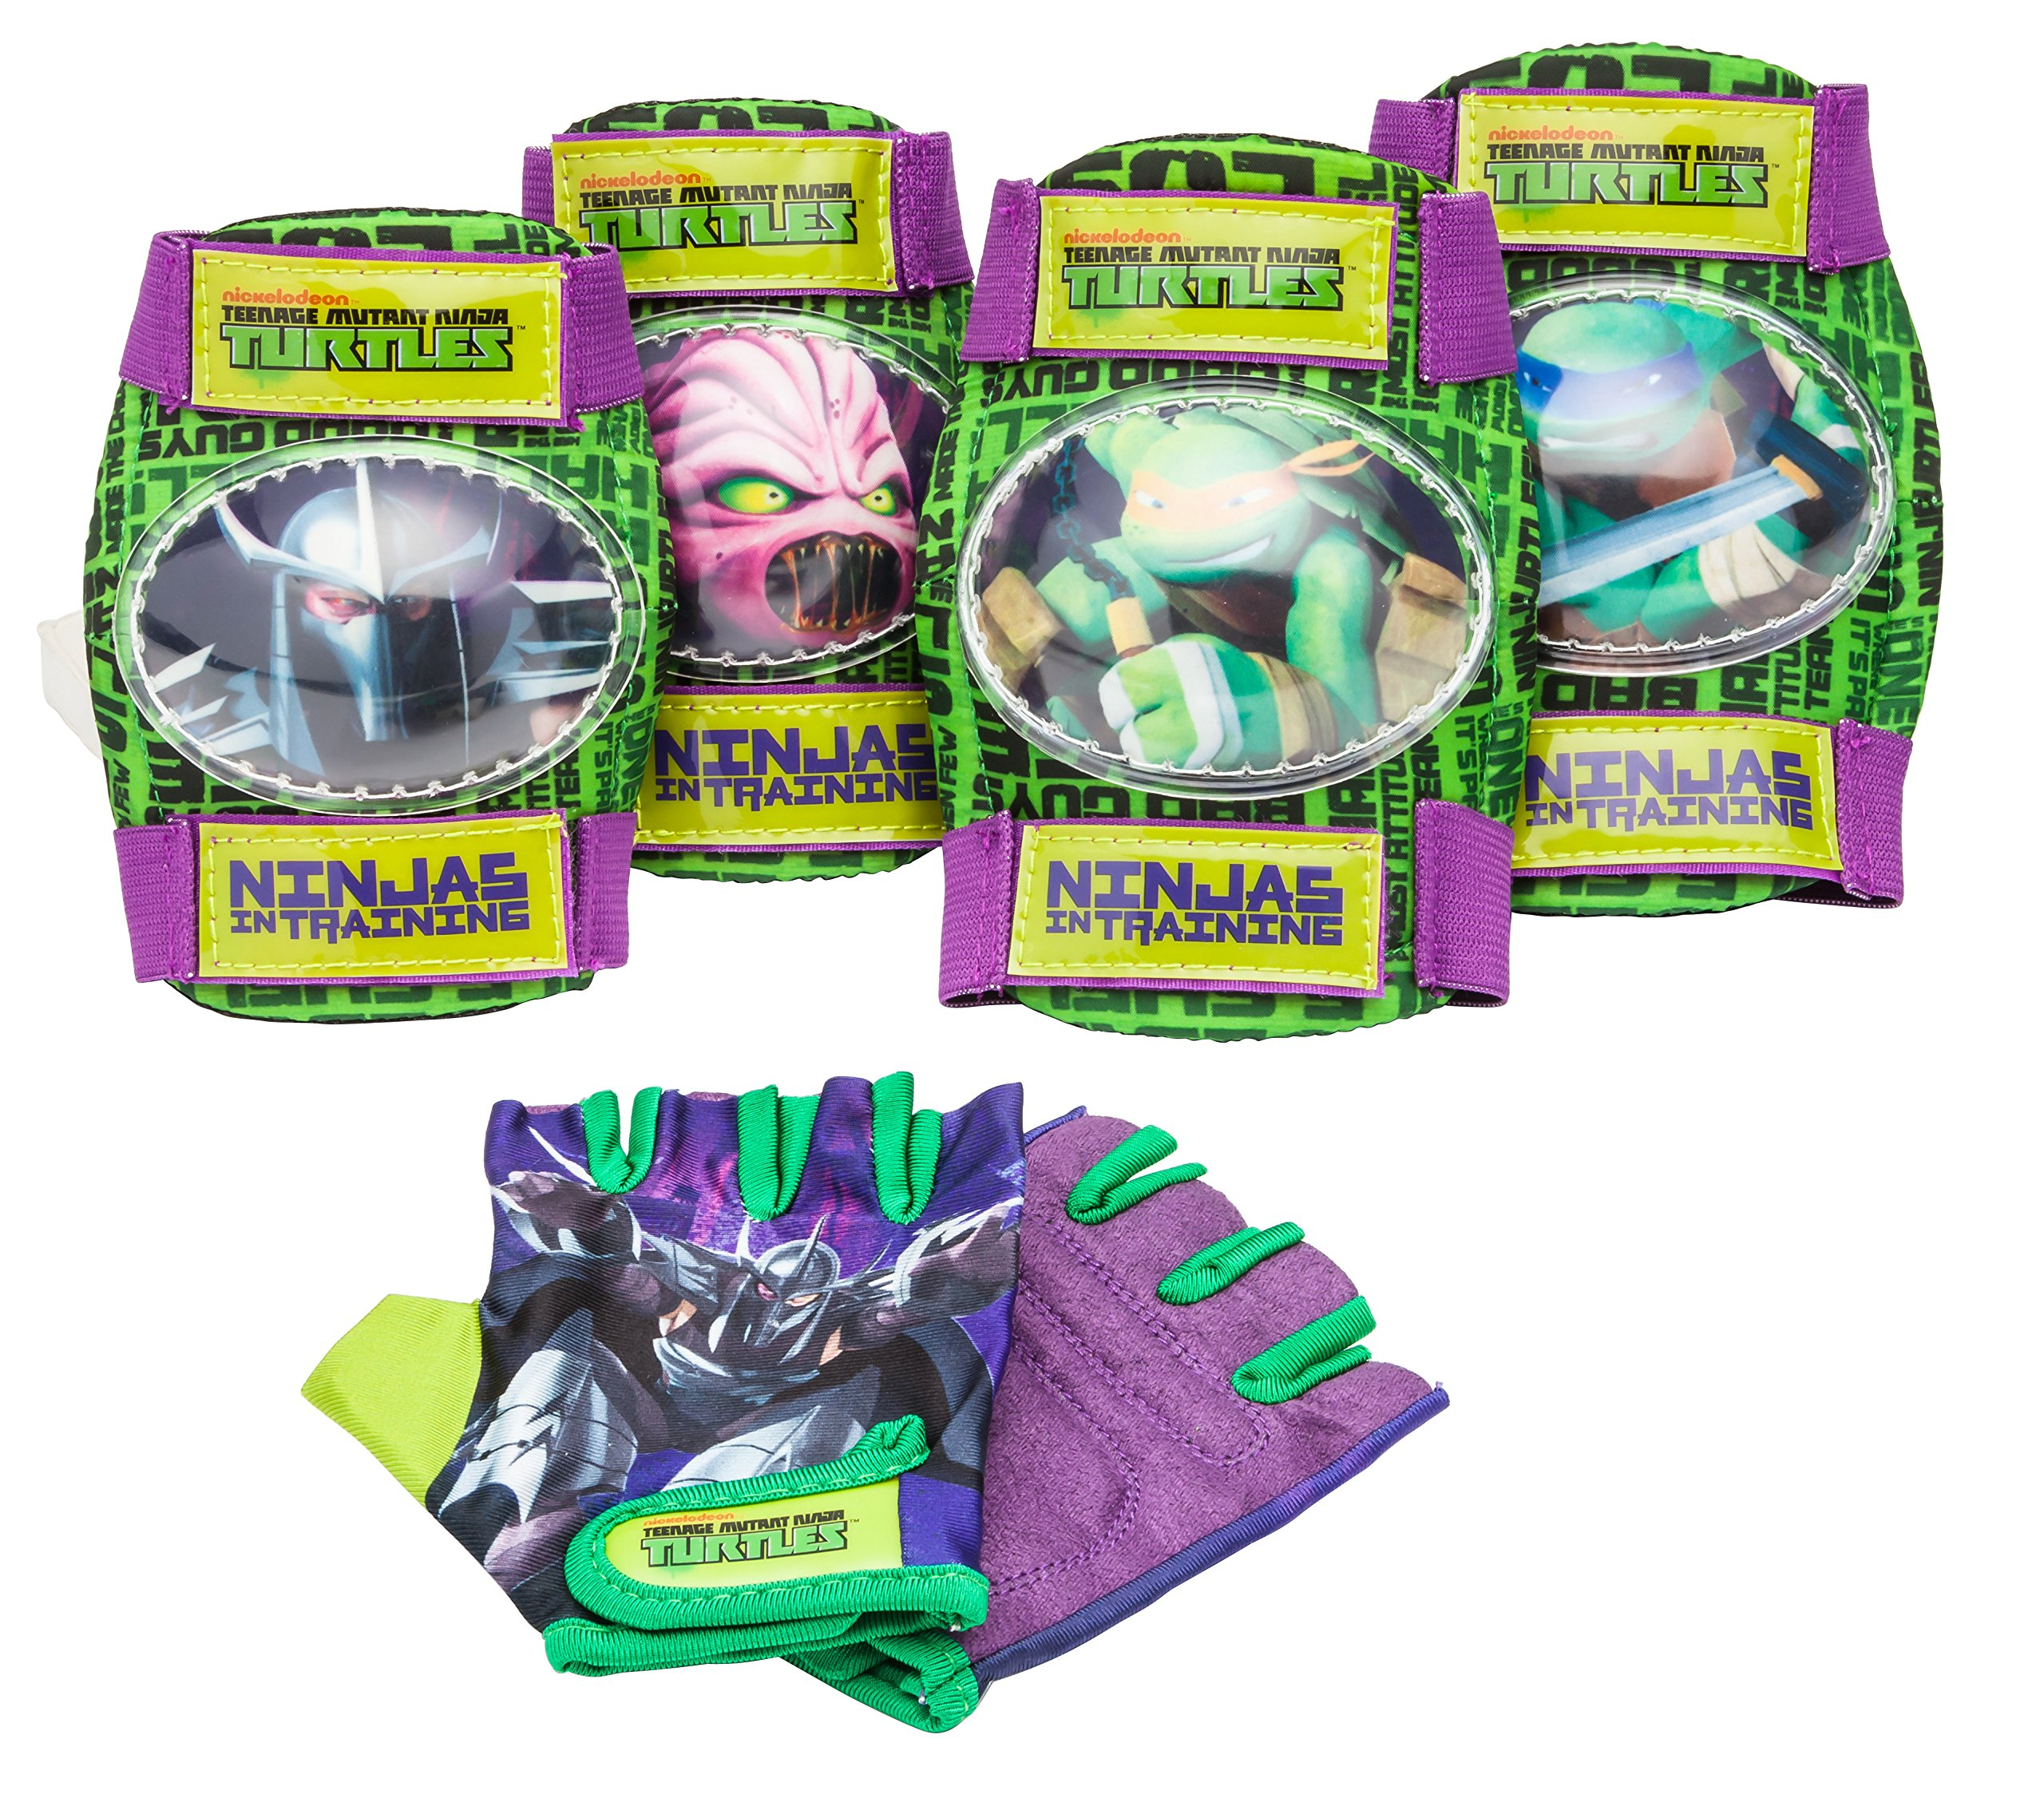 Nickelodeon TMNT Half Shell Heroes Pad Set by Nickelodeon (Image #1)